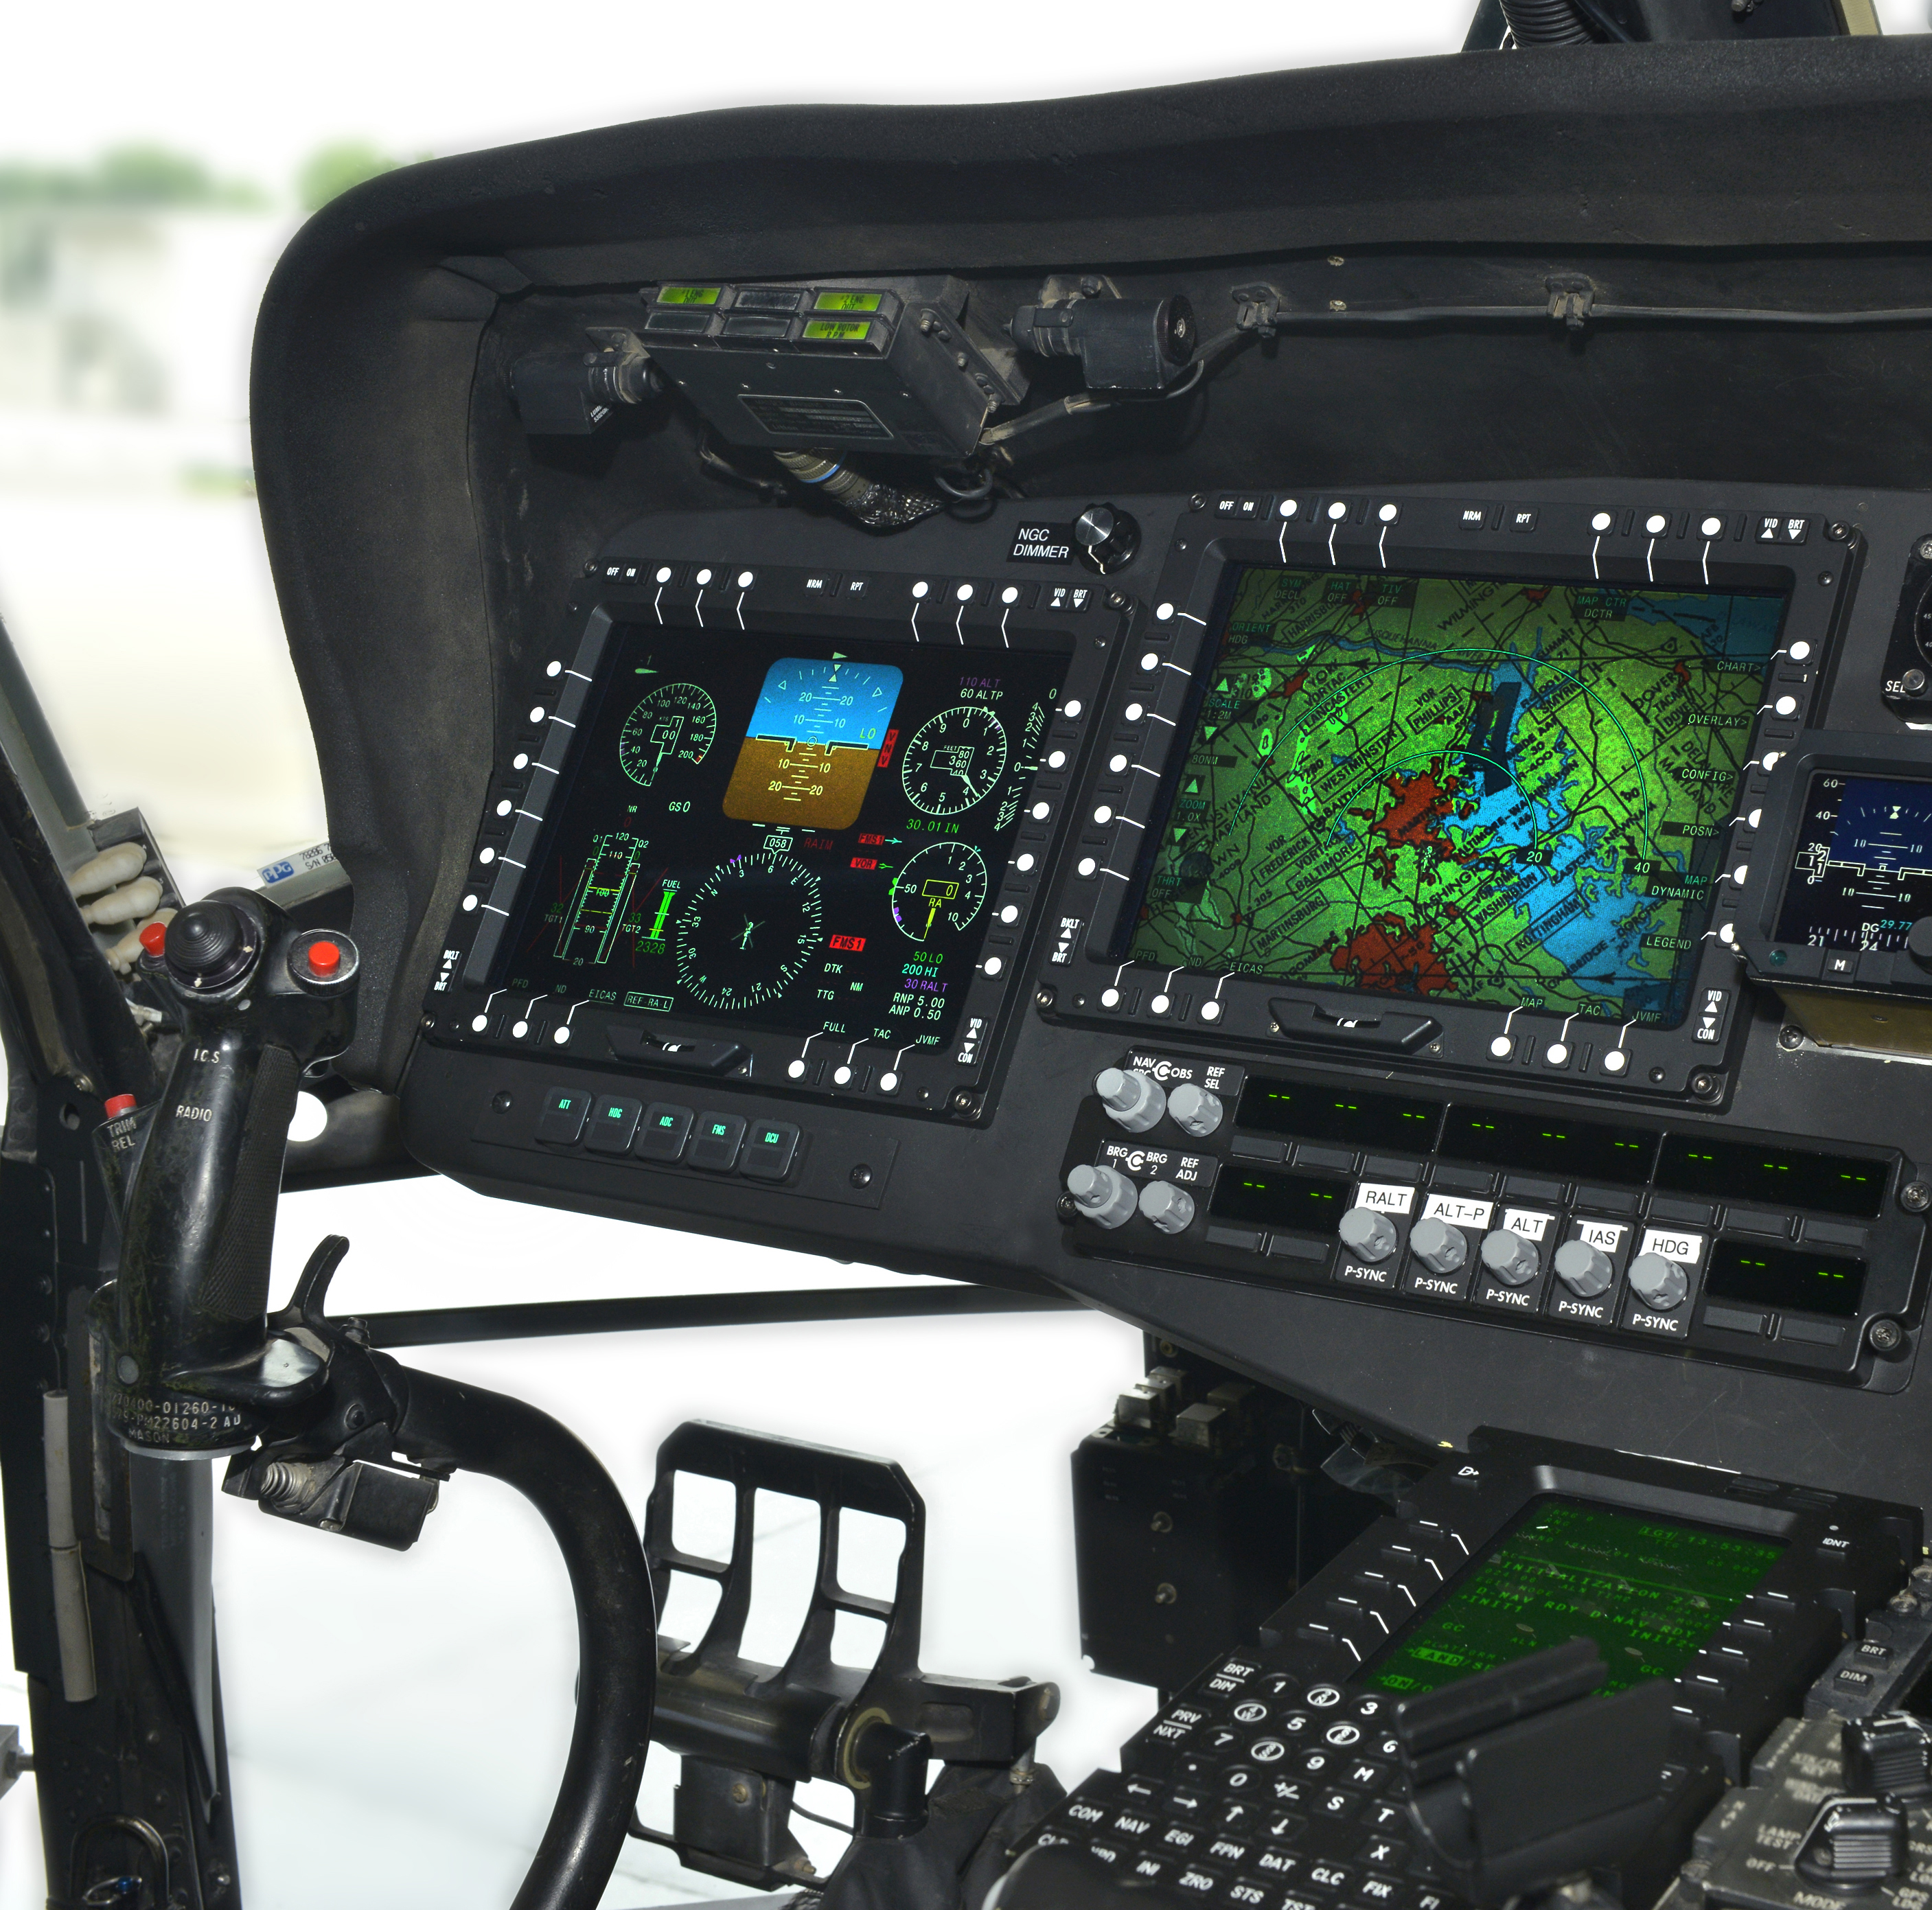 blackhawk helicopter interior with Photo Release Northrop Grumman Selected To Modernize Black Hawk Cockpit For Us Army on Ste unk Battle Ready Airship besides Boeing E2 80 93Sikorsky RAH 66  anche as well Product together with Mi 24 Pics additionally Navy Copter Crash Lands Pair Hurt.